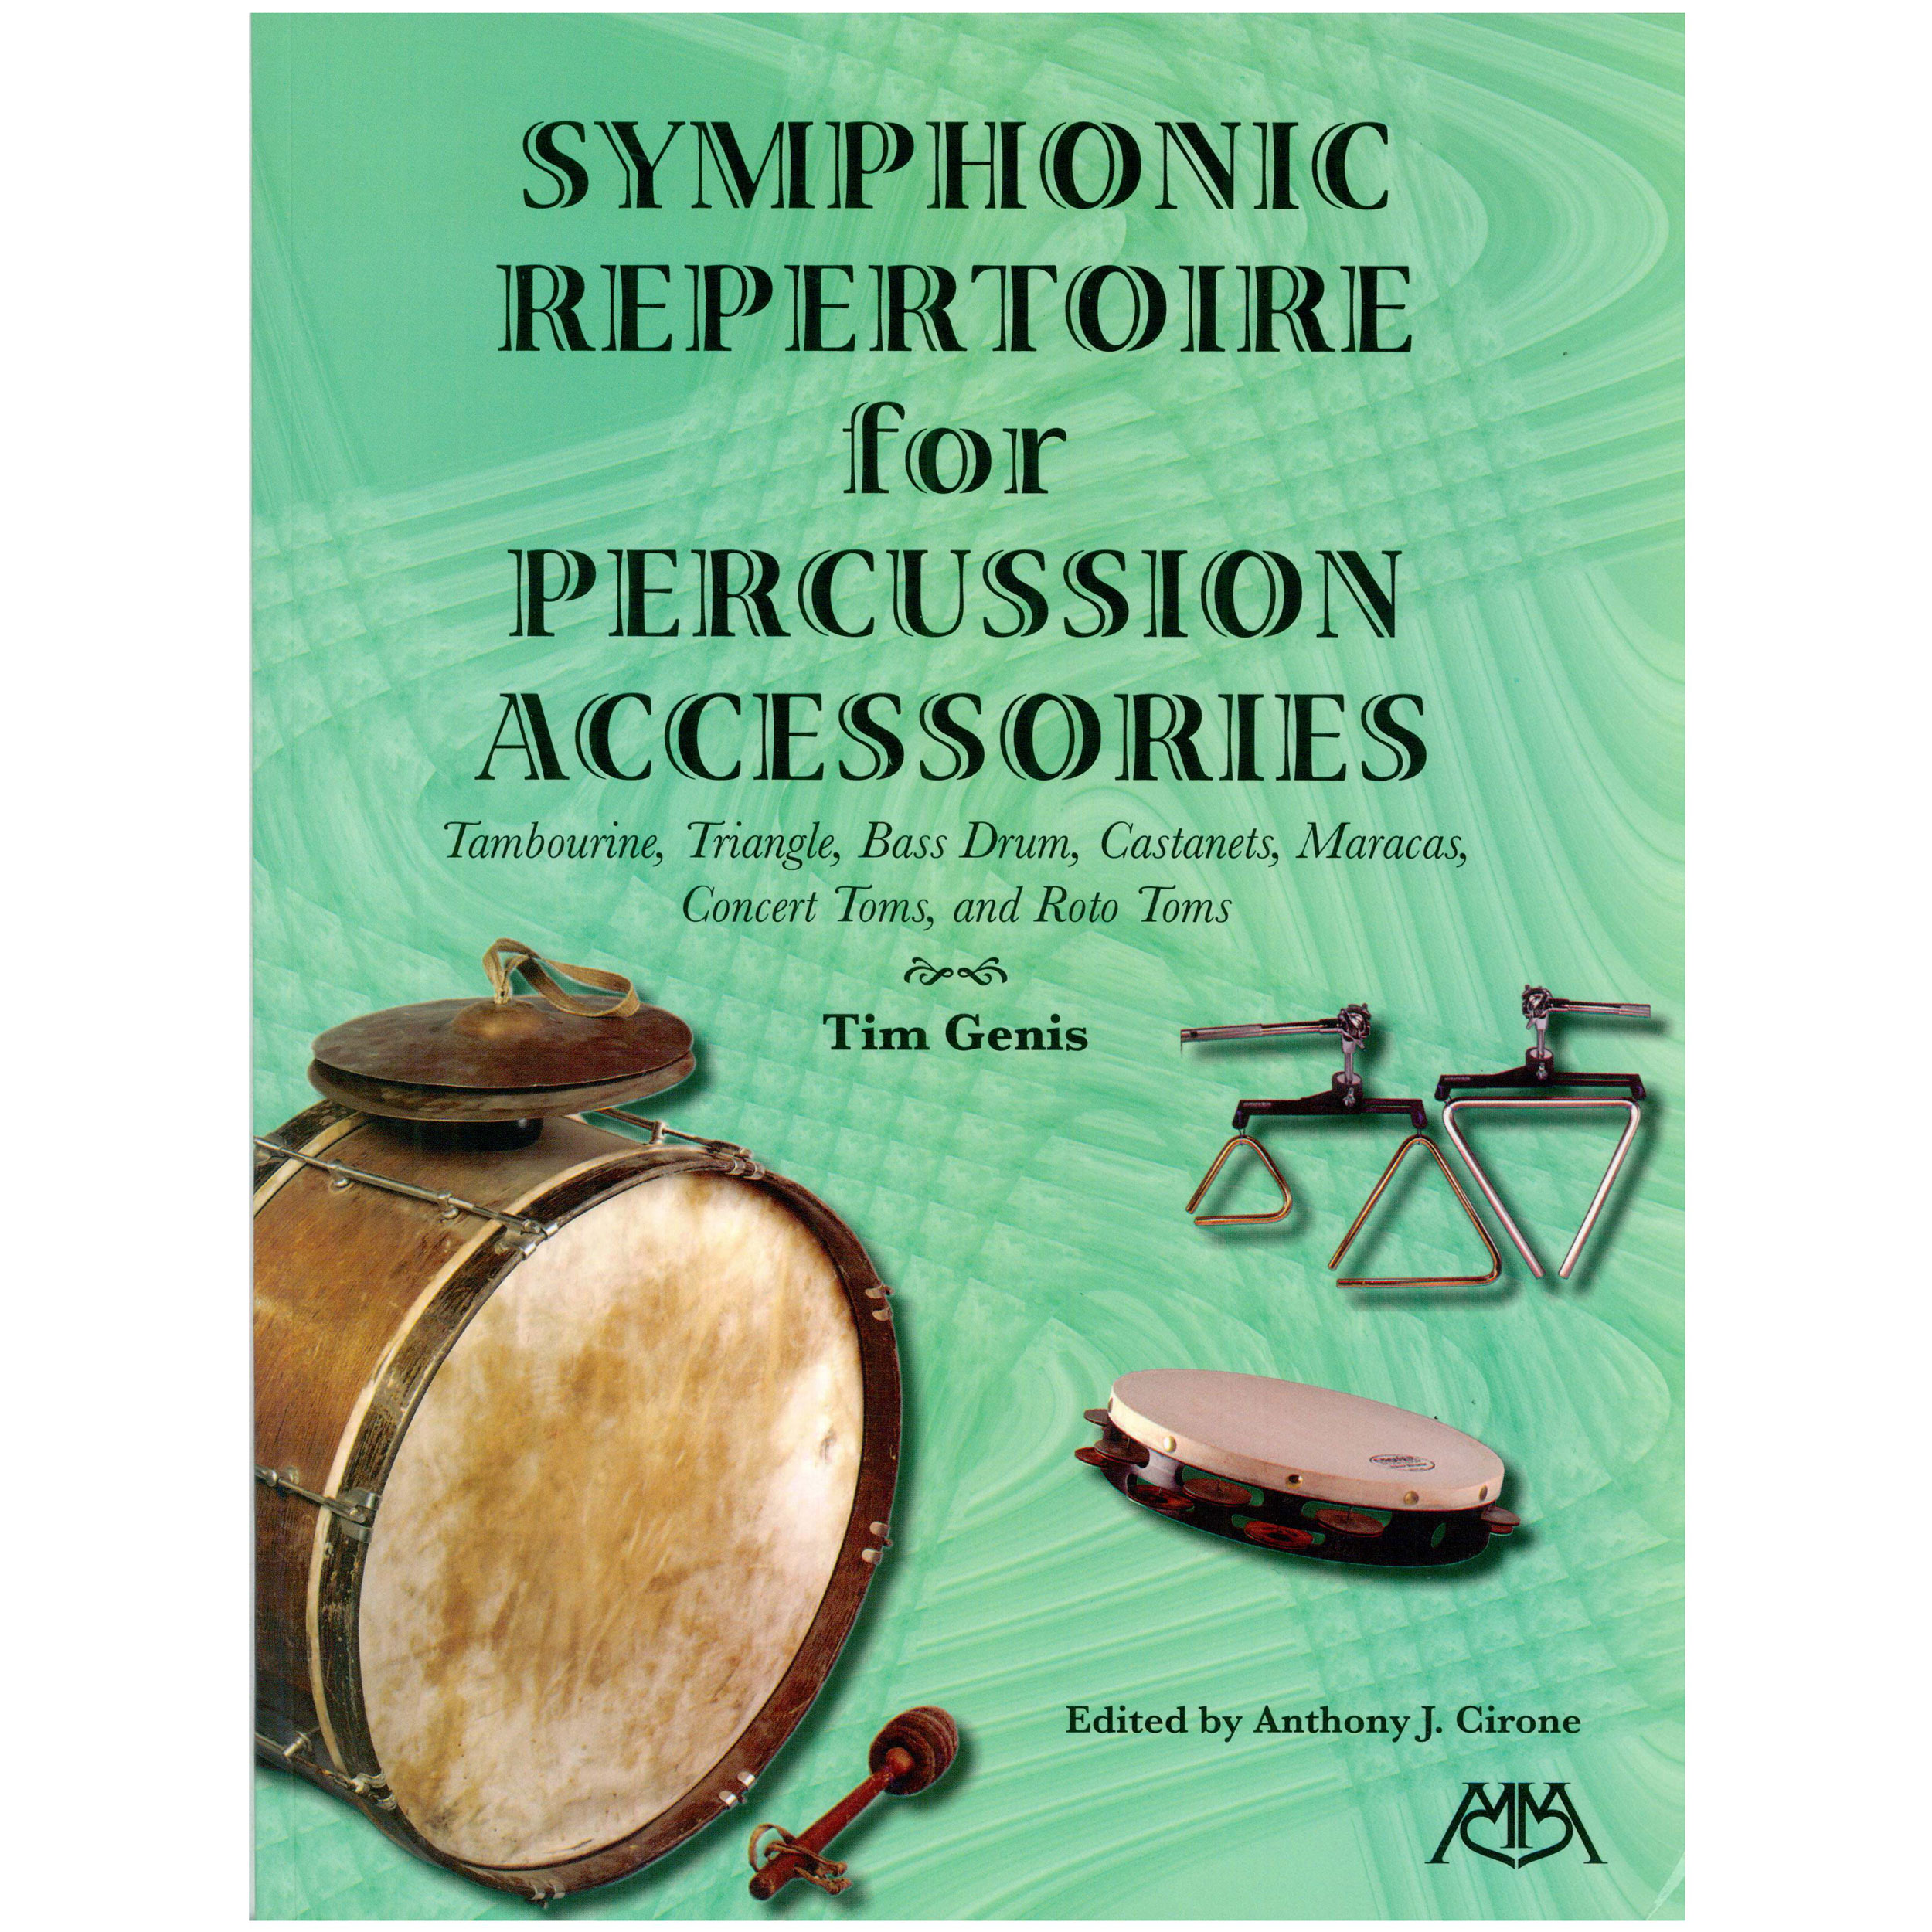 Symphonic Repertoire for Percussion Accessories by Tim Genis